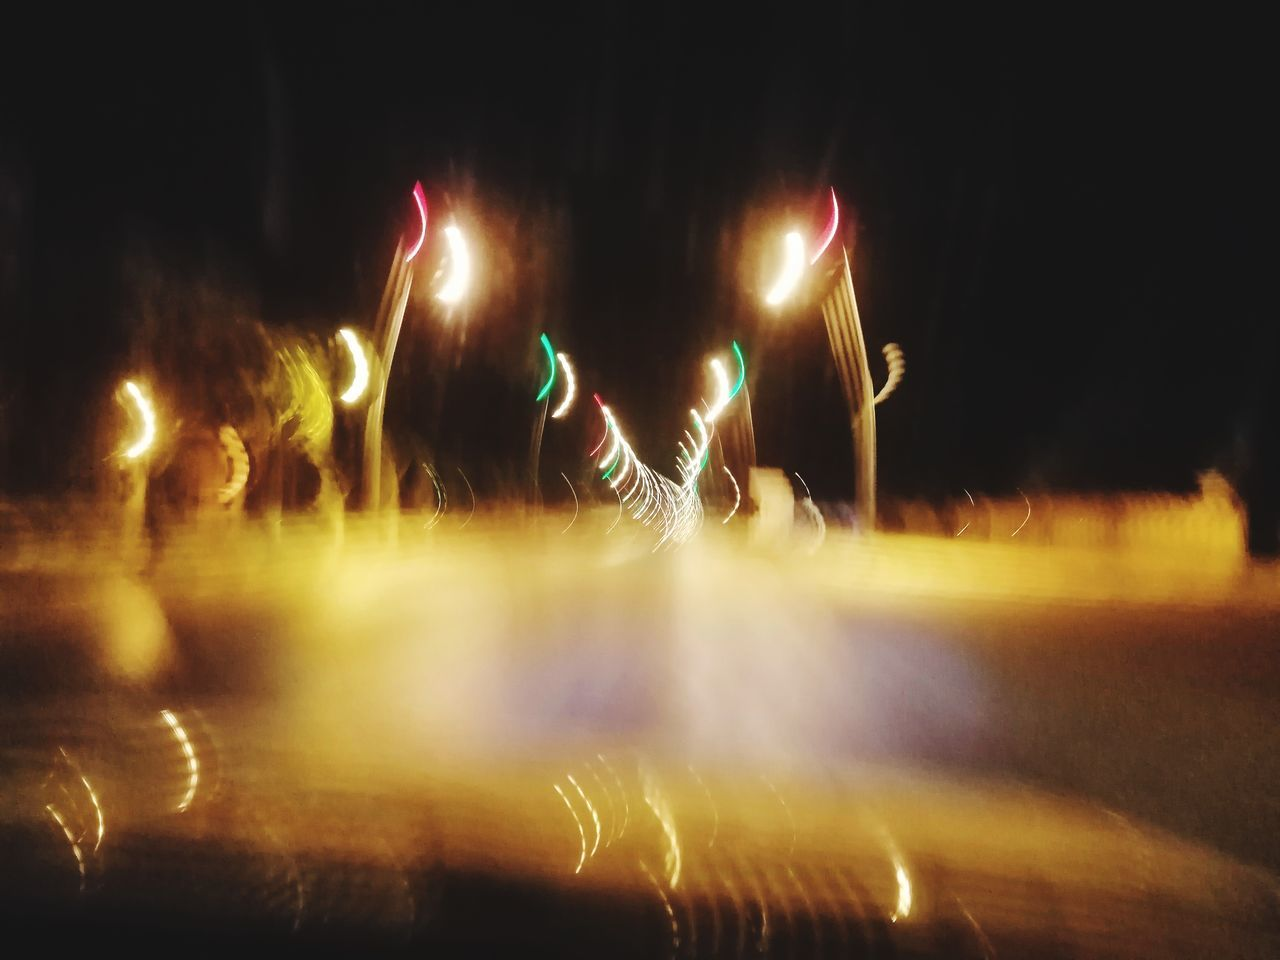 night, illuminated, blurred motion, motion, glowing, real people, long exposure, arts culture and entertainment, lifestyles, men, light - natural phenomenon, people, performance, light trail, group of people, standing, leisure activity, enjoyment, event, lighting equipment, nightlife, light, stage